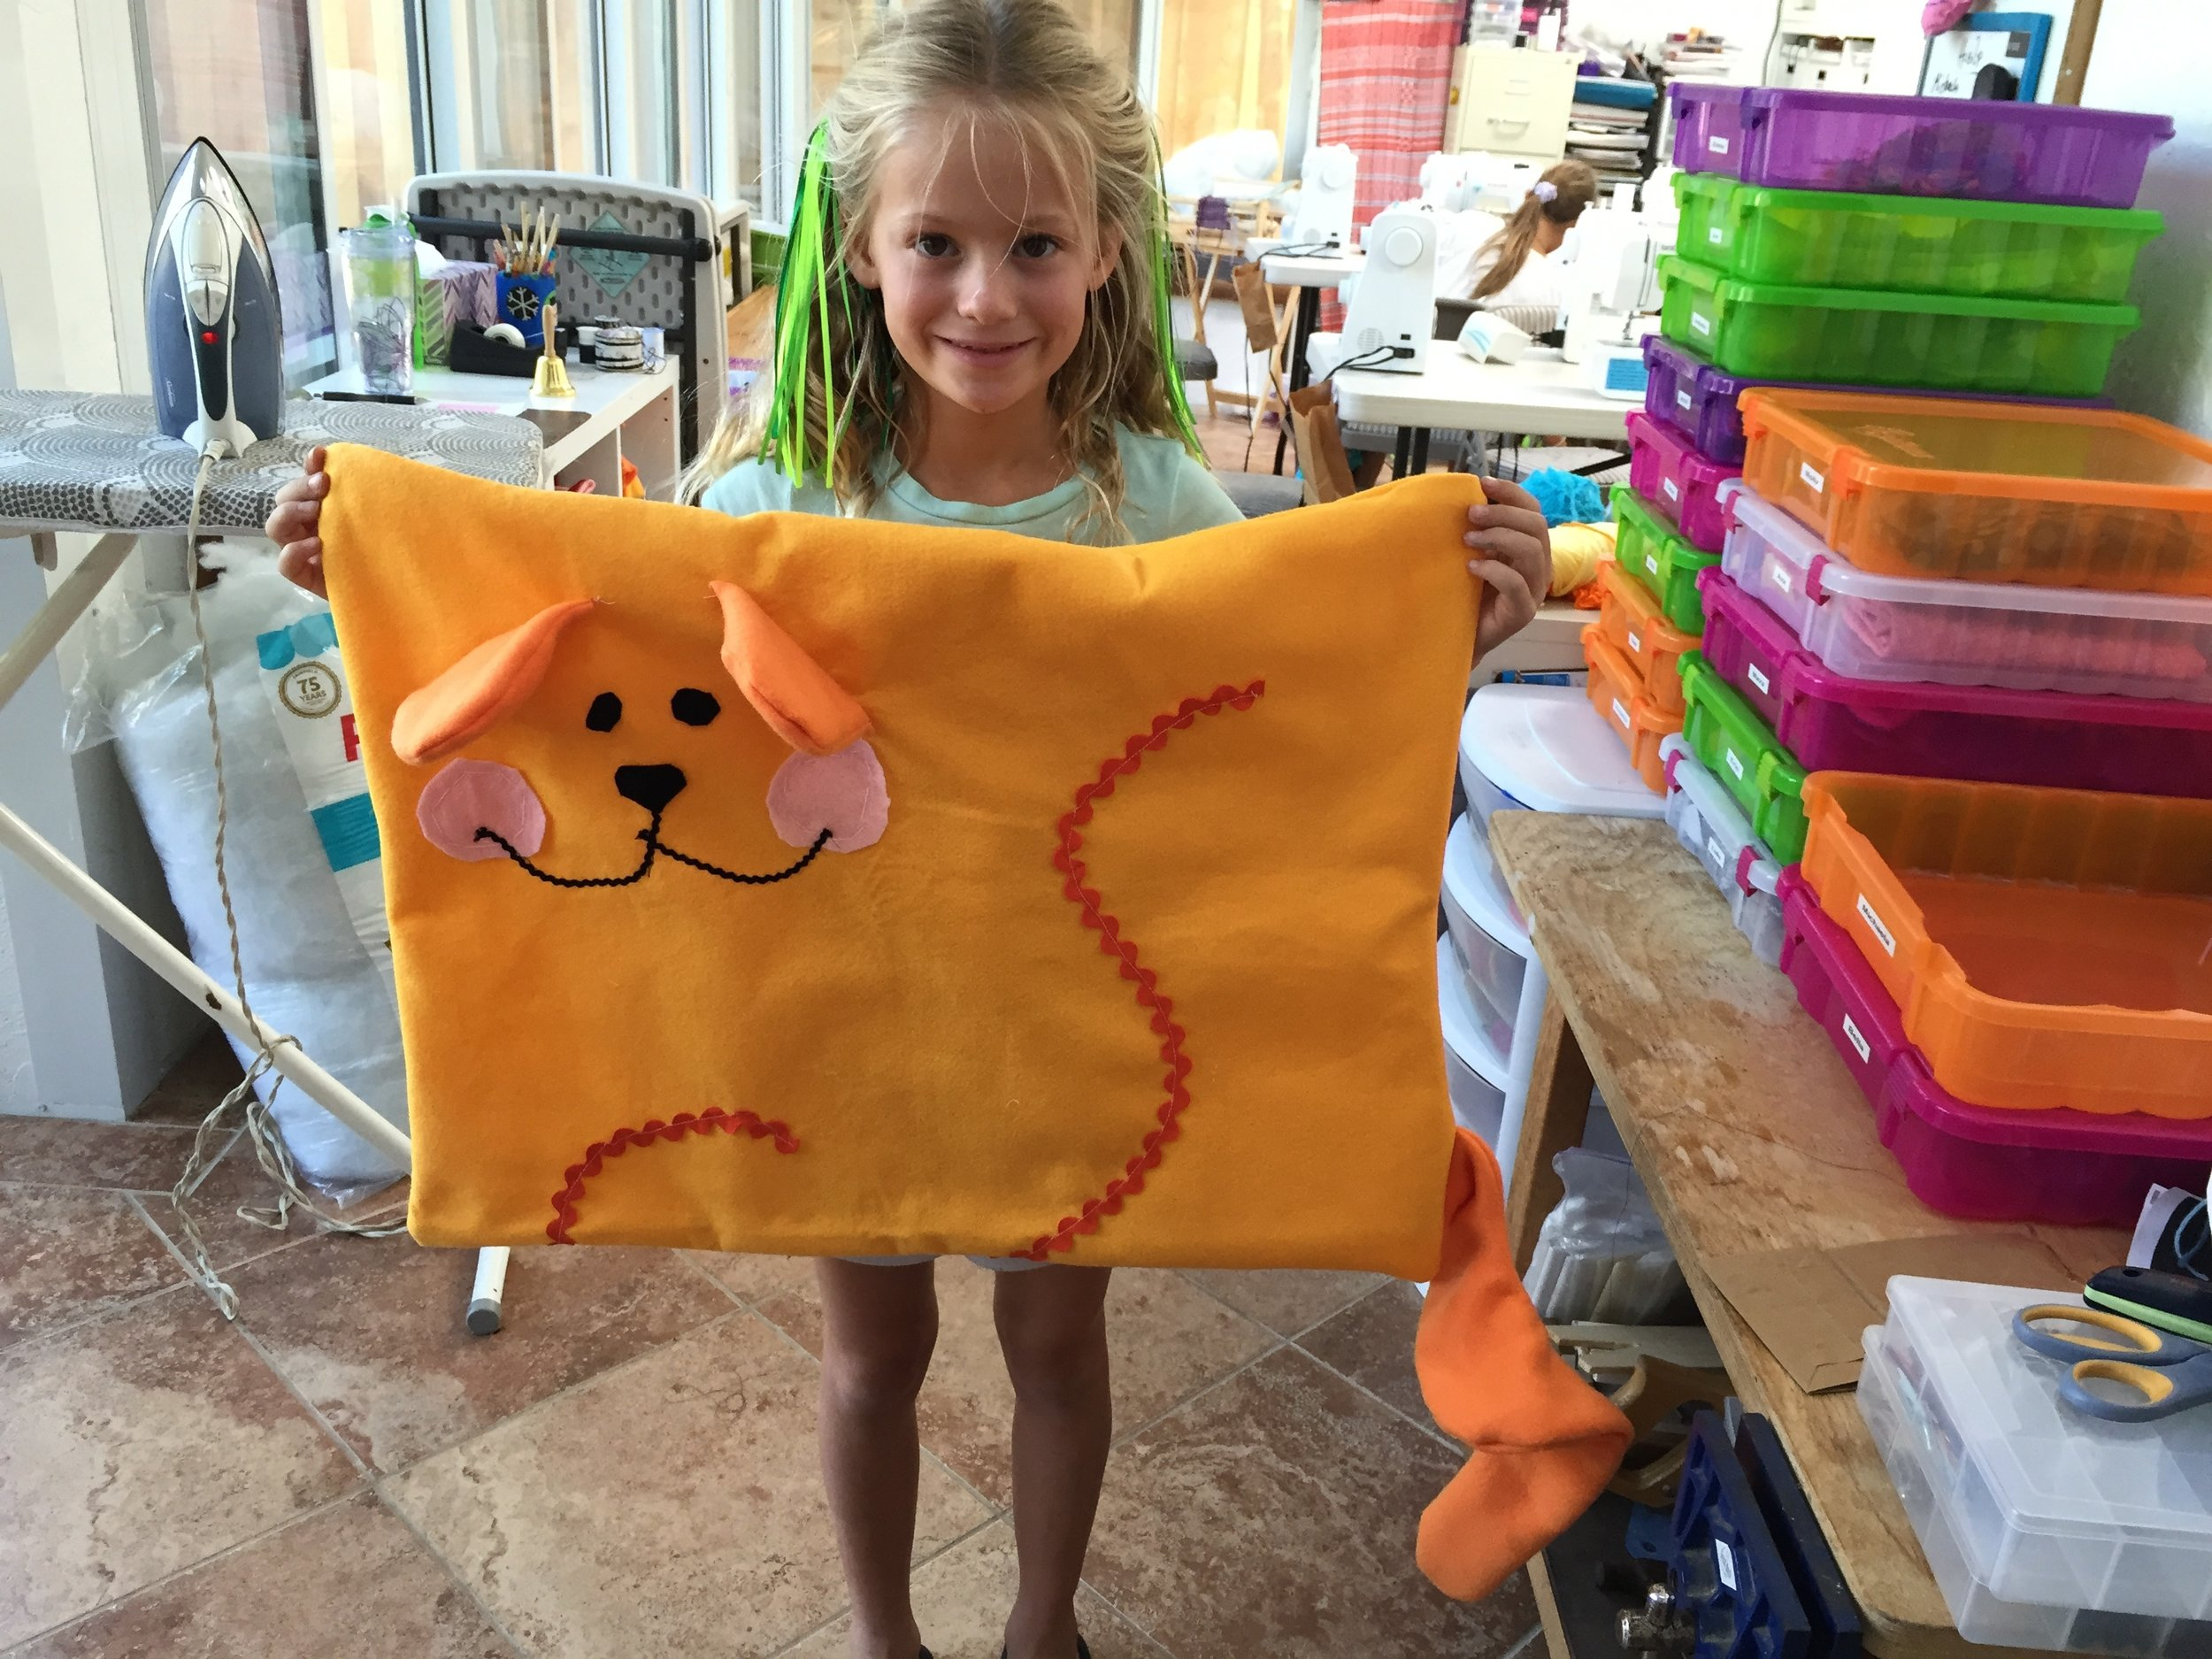 3rd grader Cat Pillowcase.